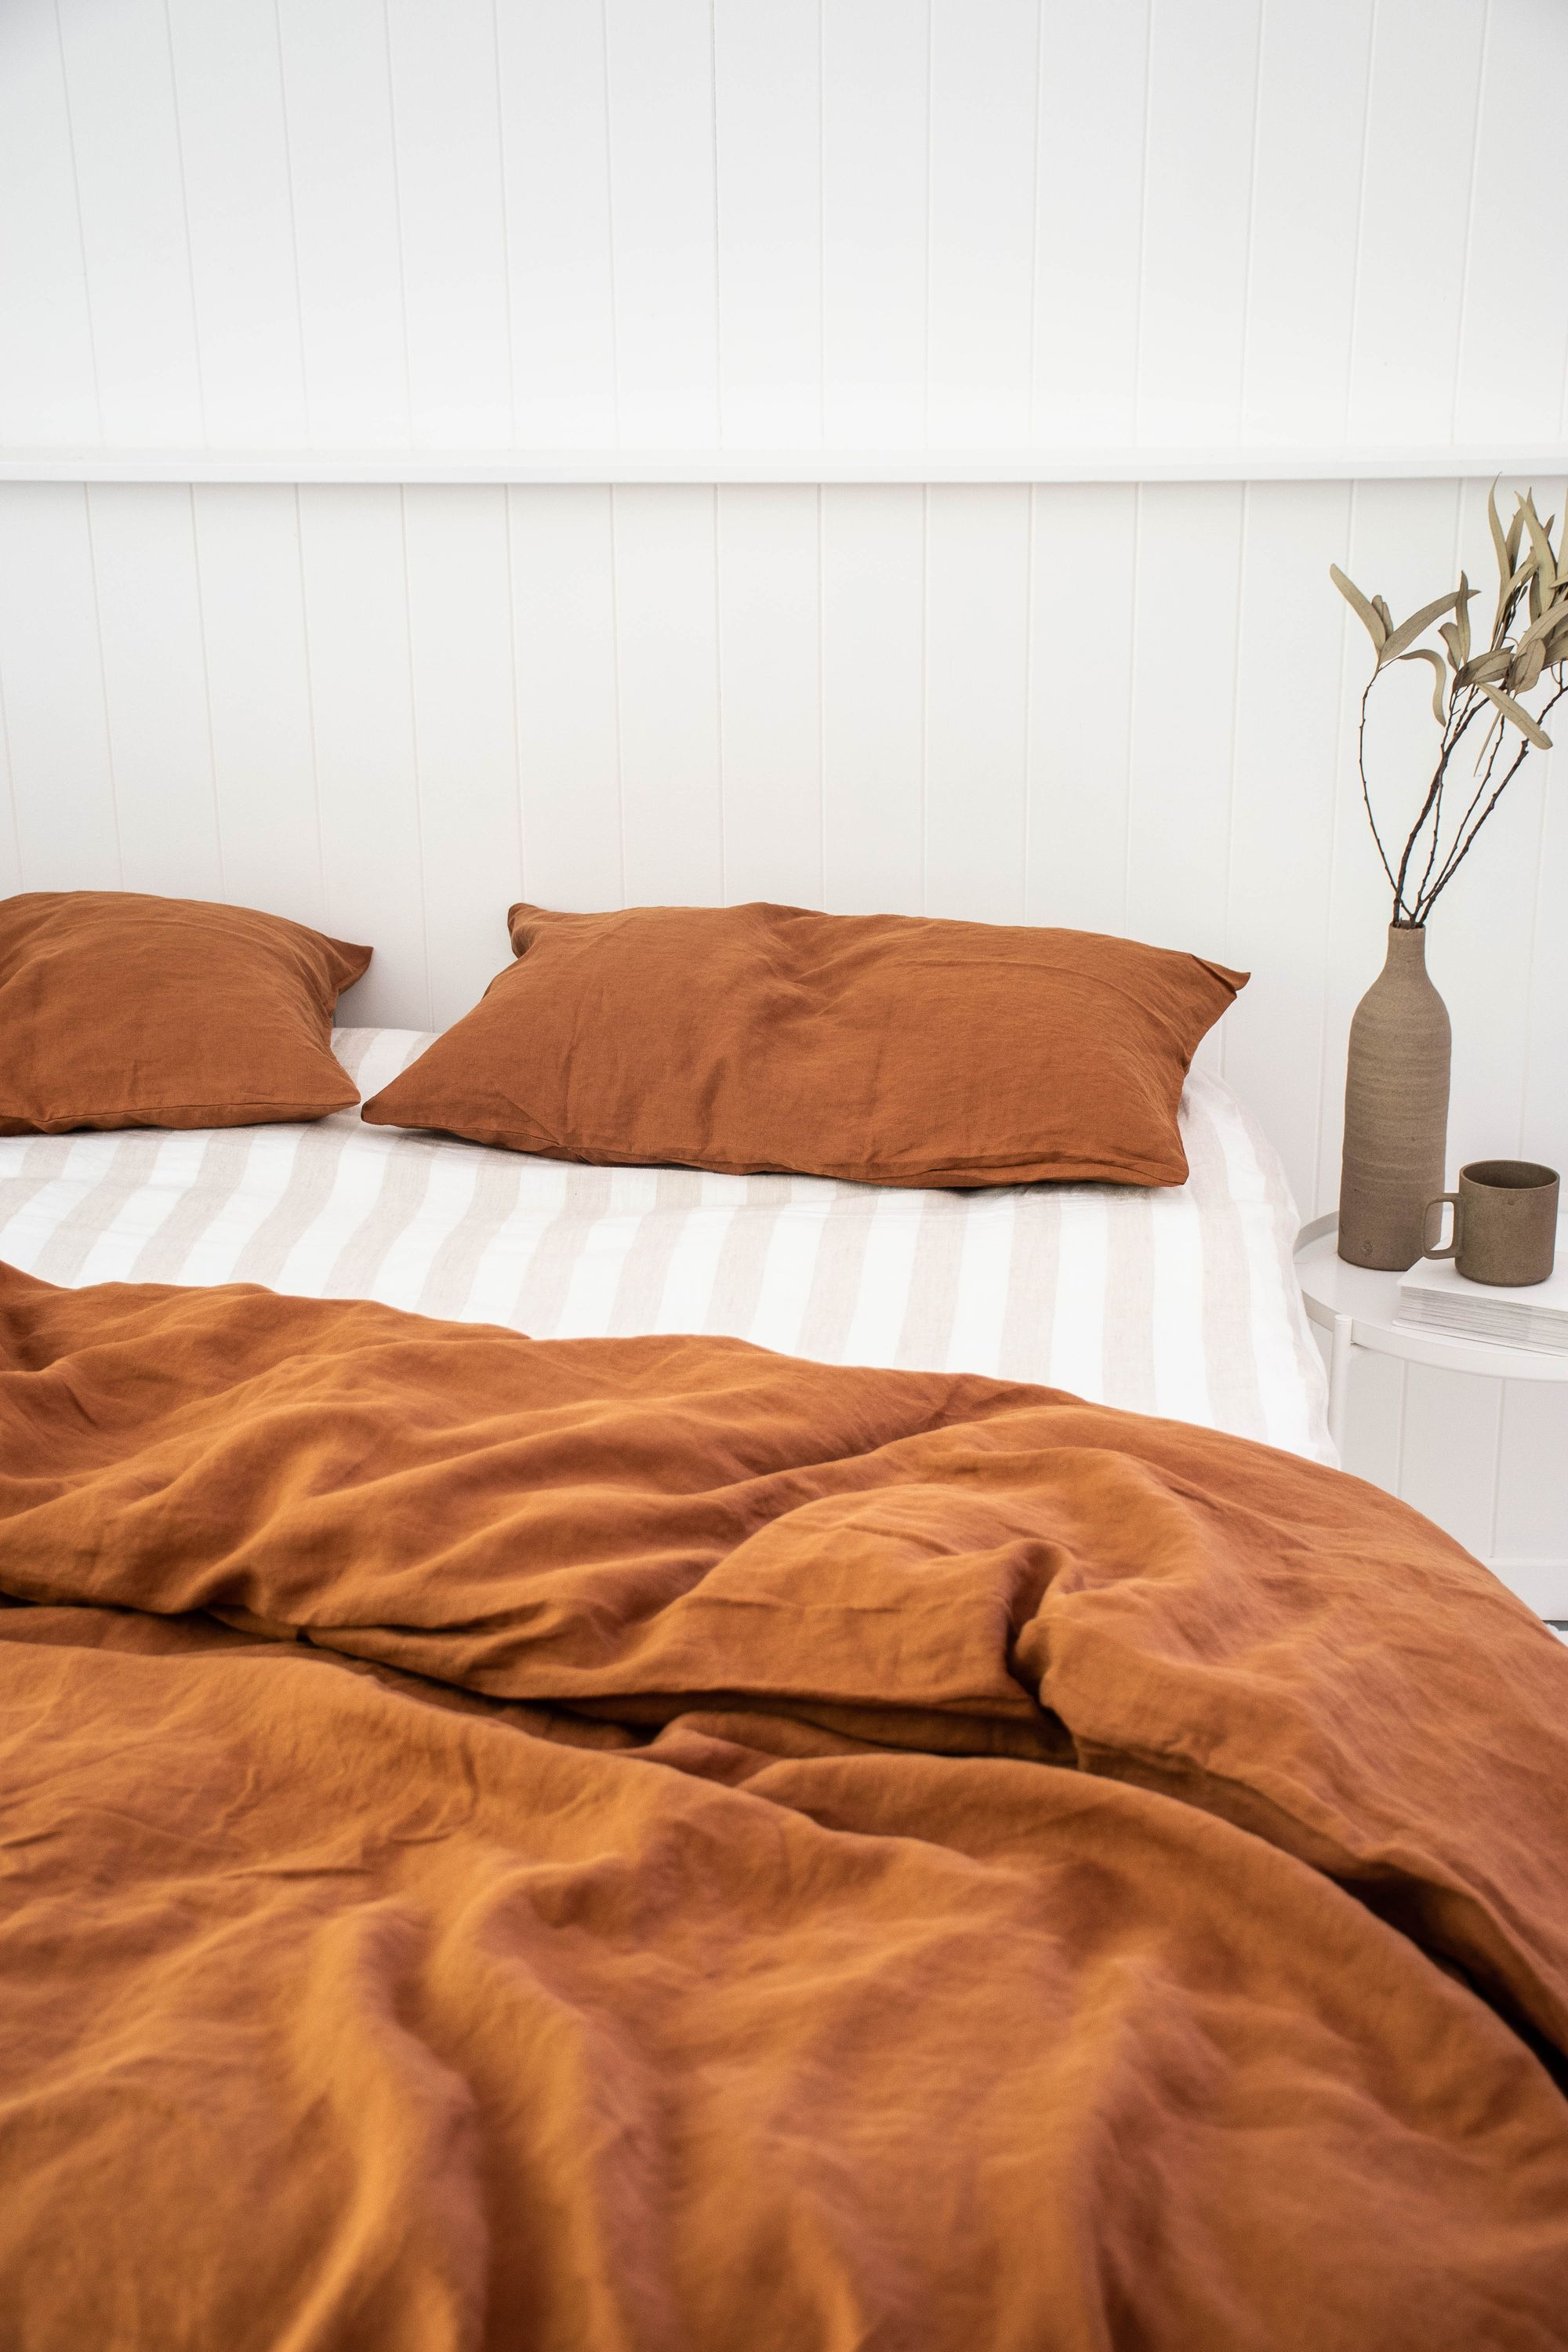 Nothing Beats Ochre Natural Thick Striped 100 Pure French Flax Linen Bedding Sourced From France And Delivered Pure Linen Bedding Pink Sheets Linen Sheets